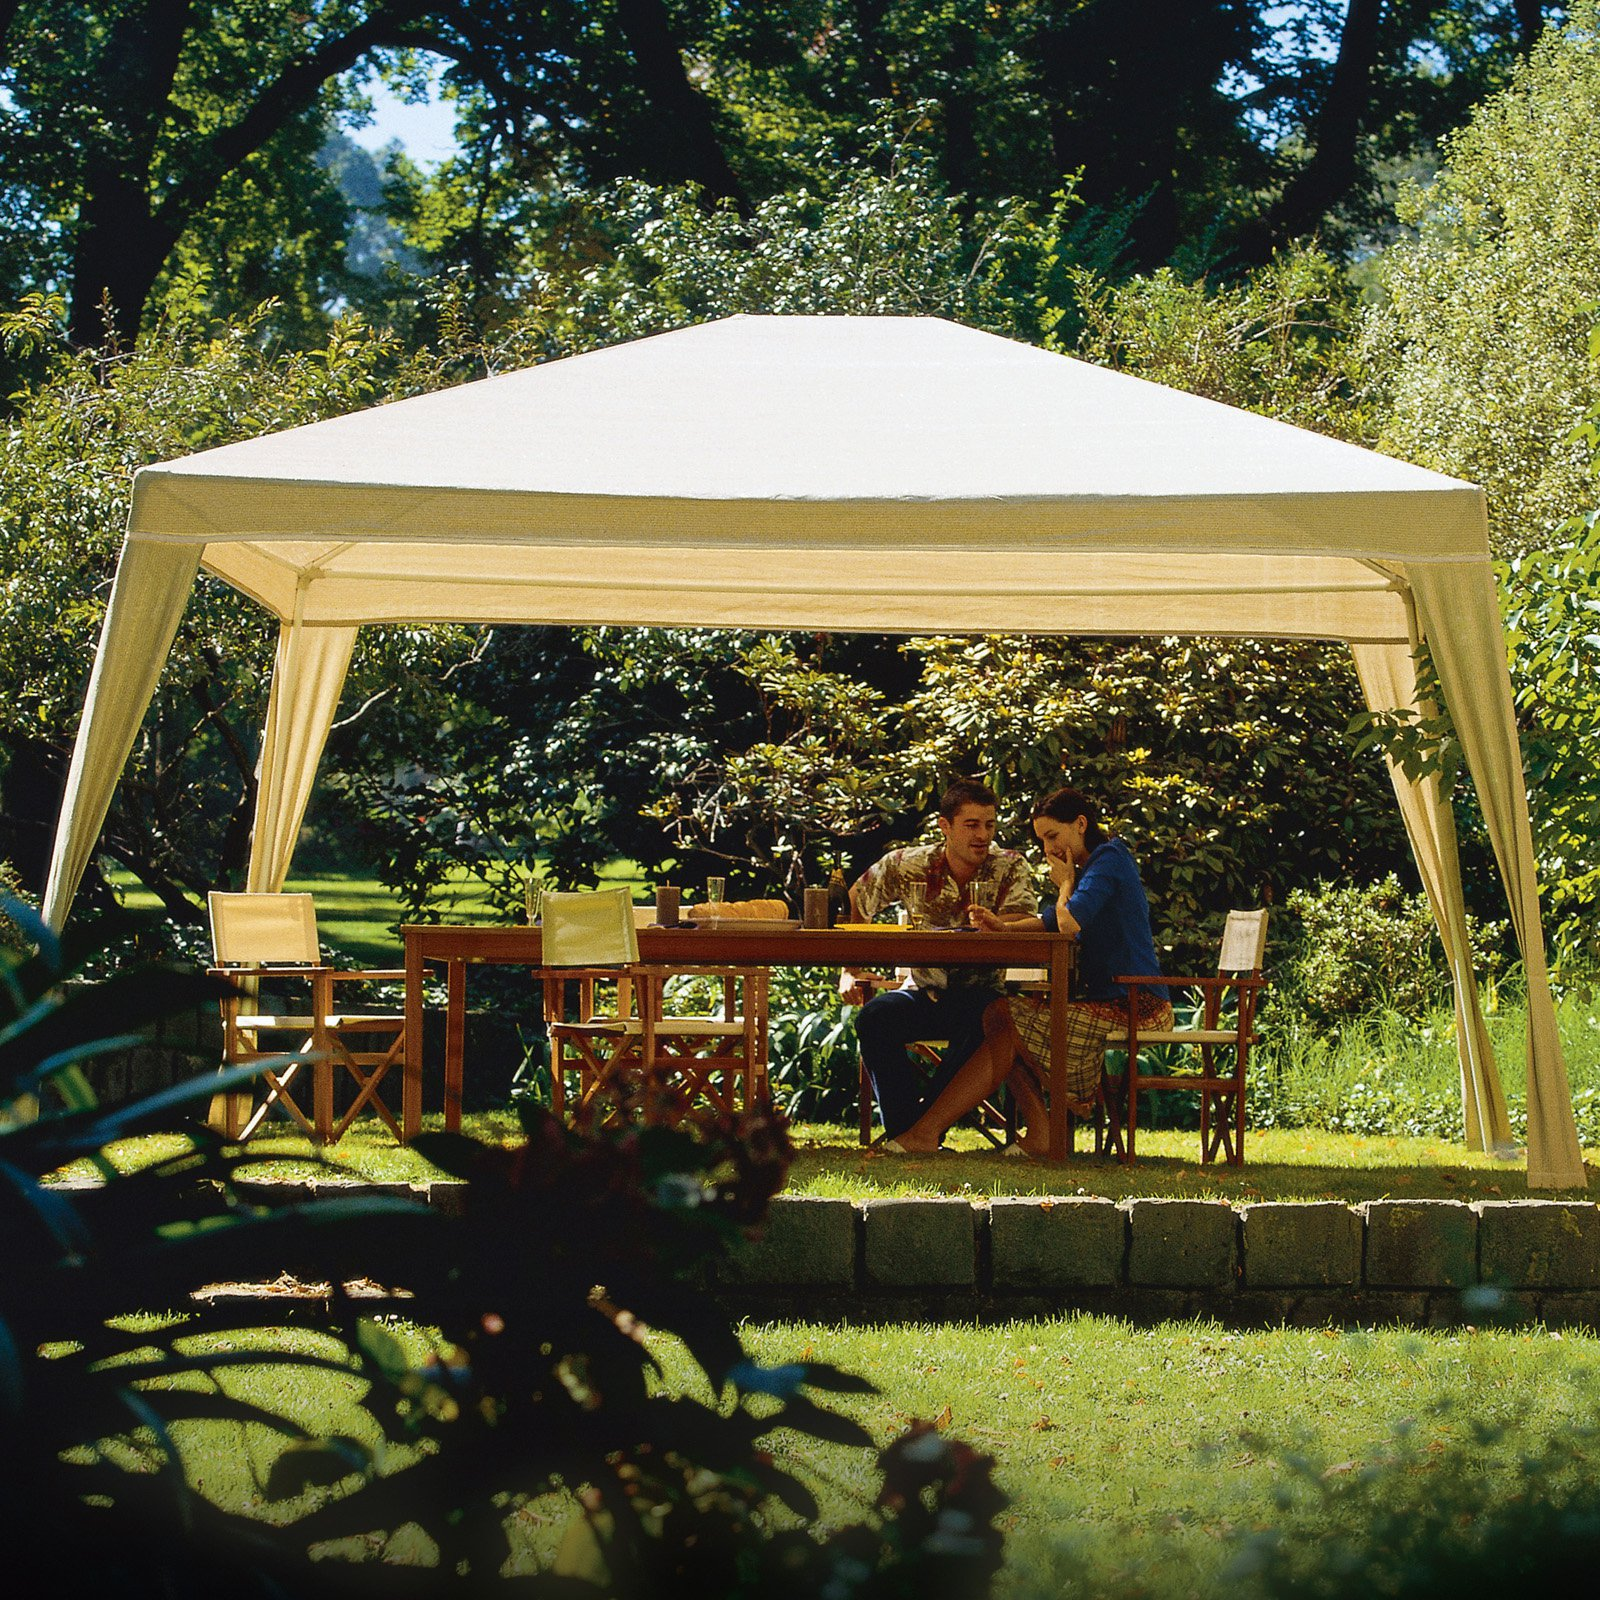 Coolaroo Rectangle Isabella Gazebo, 12' x 10', Camel by Gale Pacific USA Inc